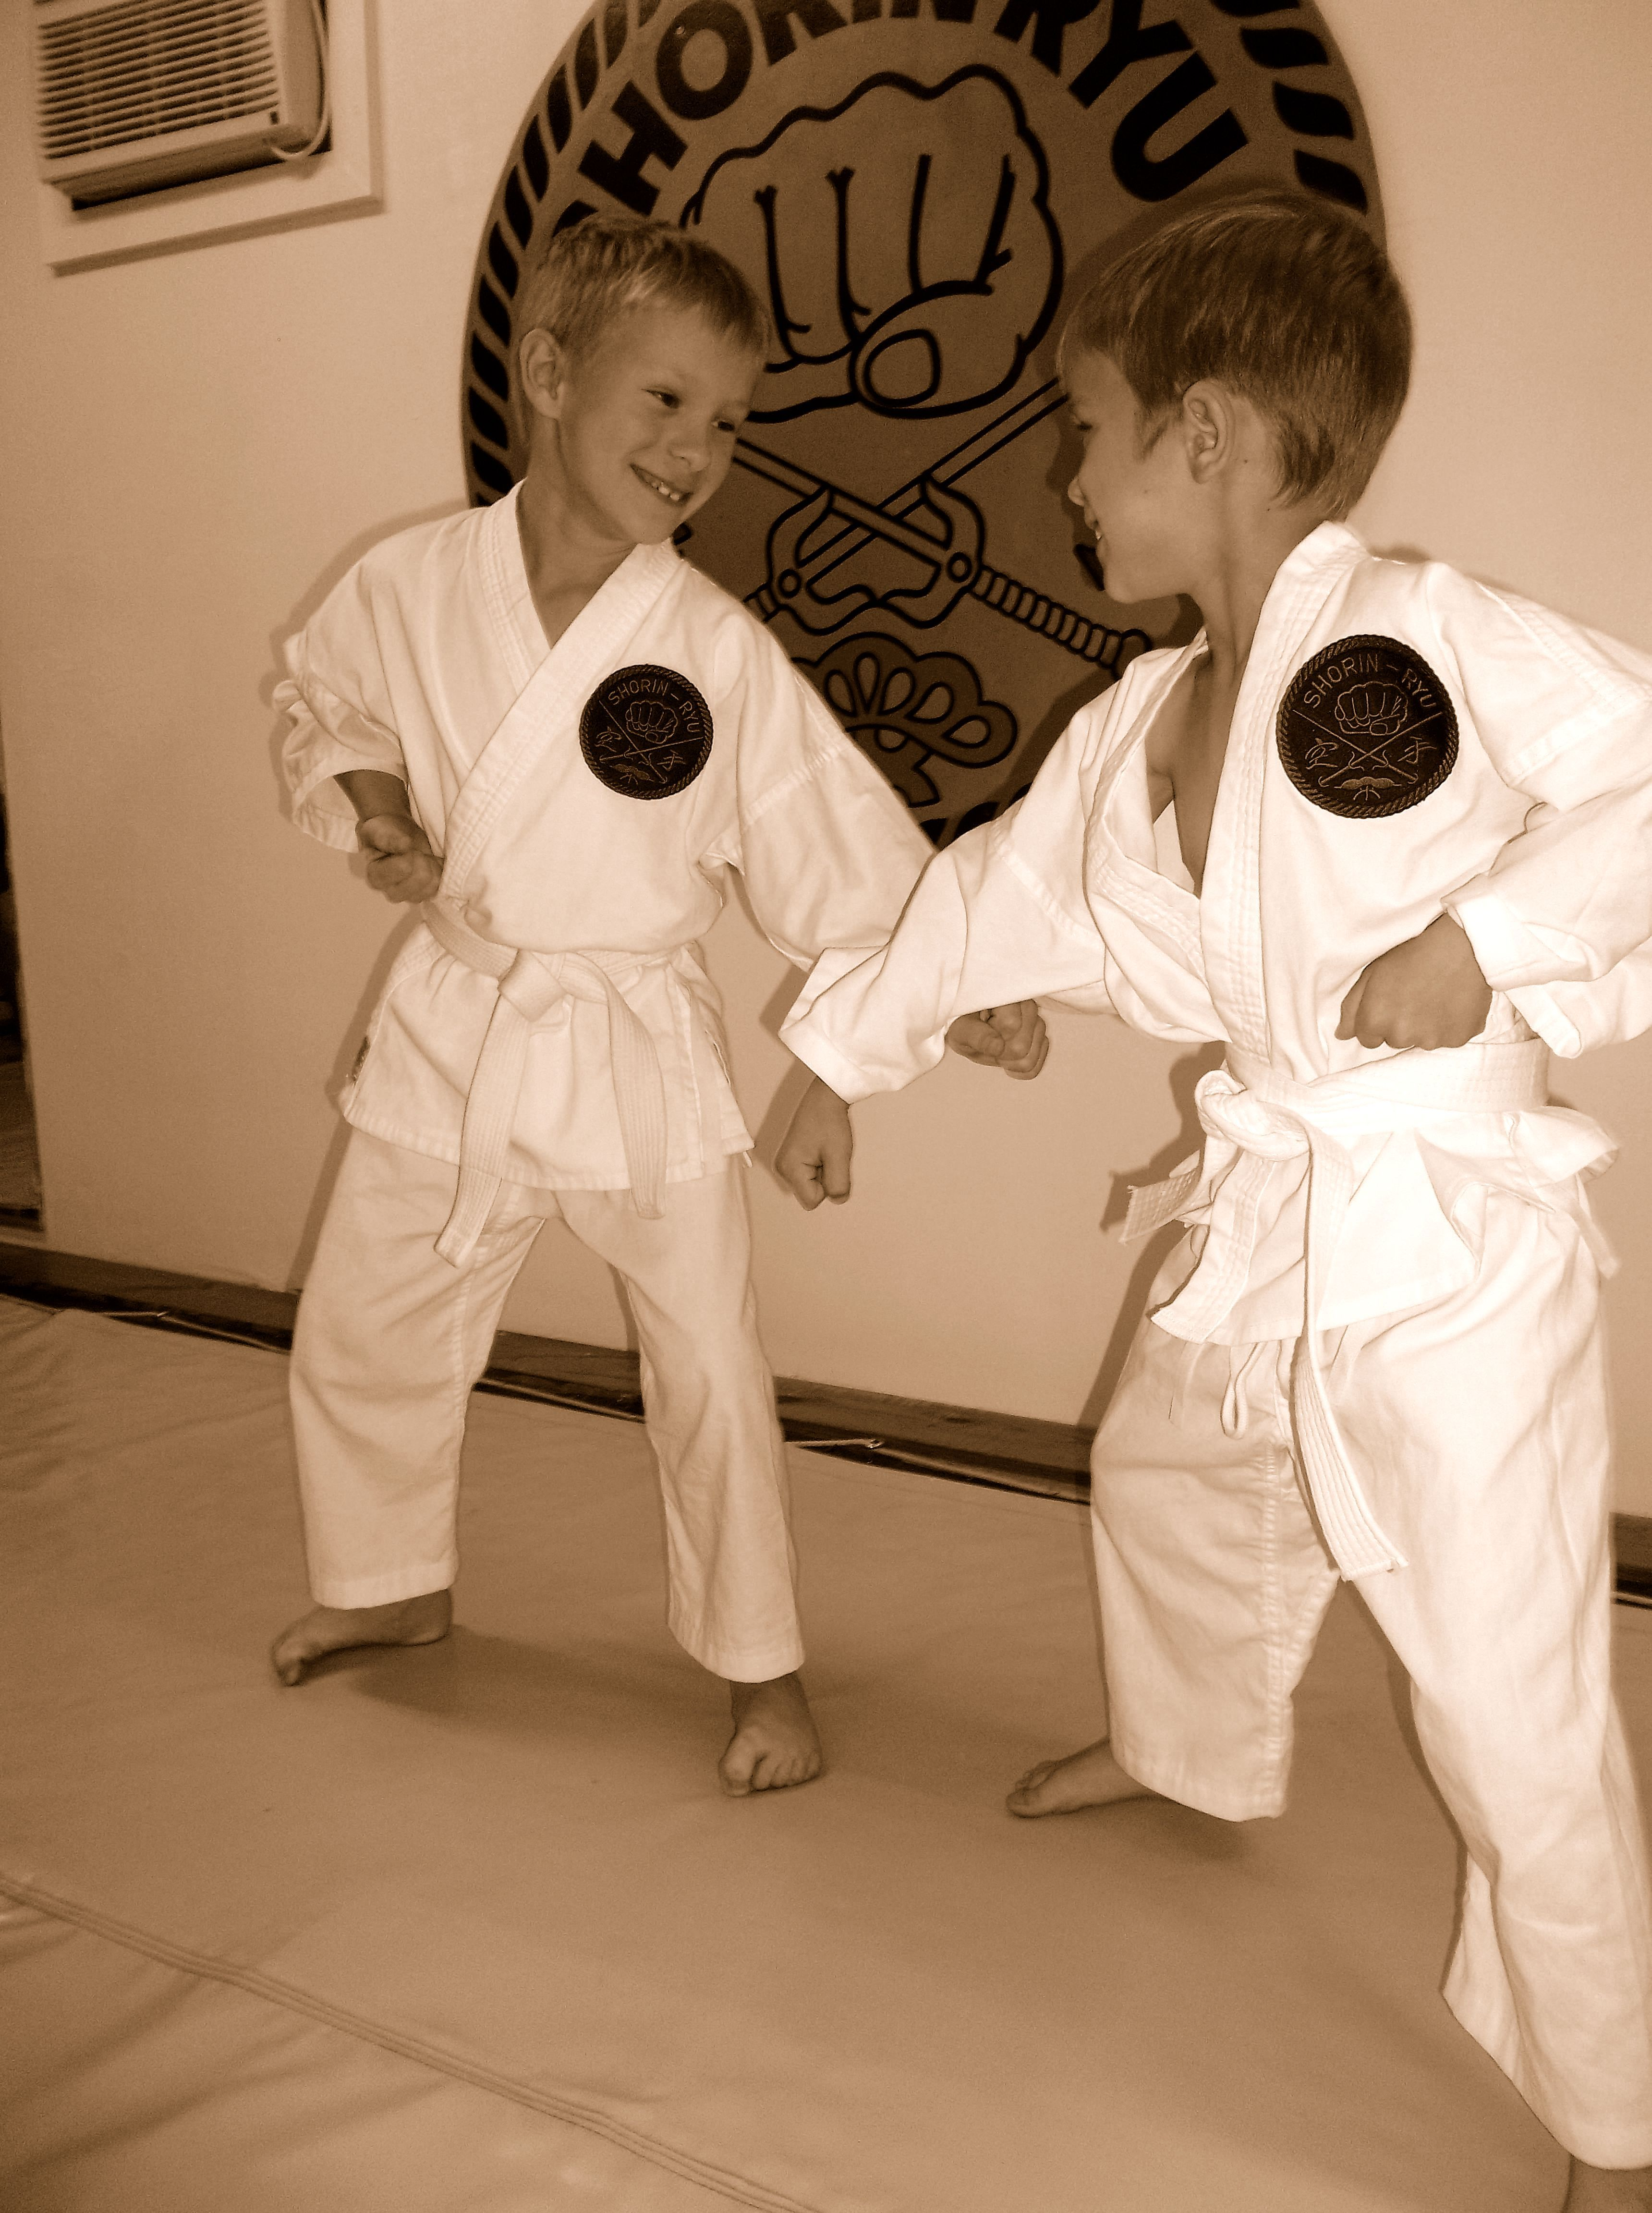 Pictures of our children students at the Merritt Island dojo